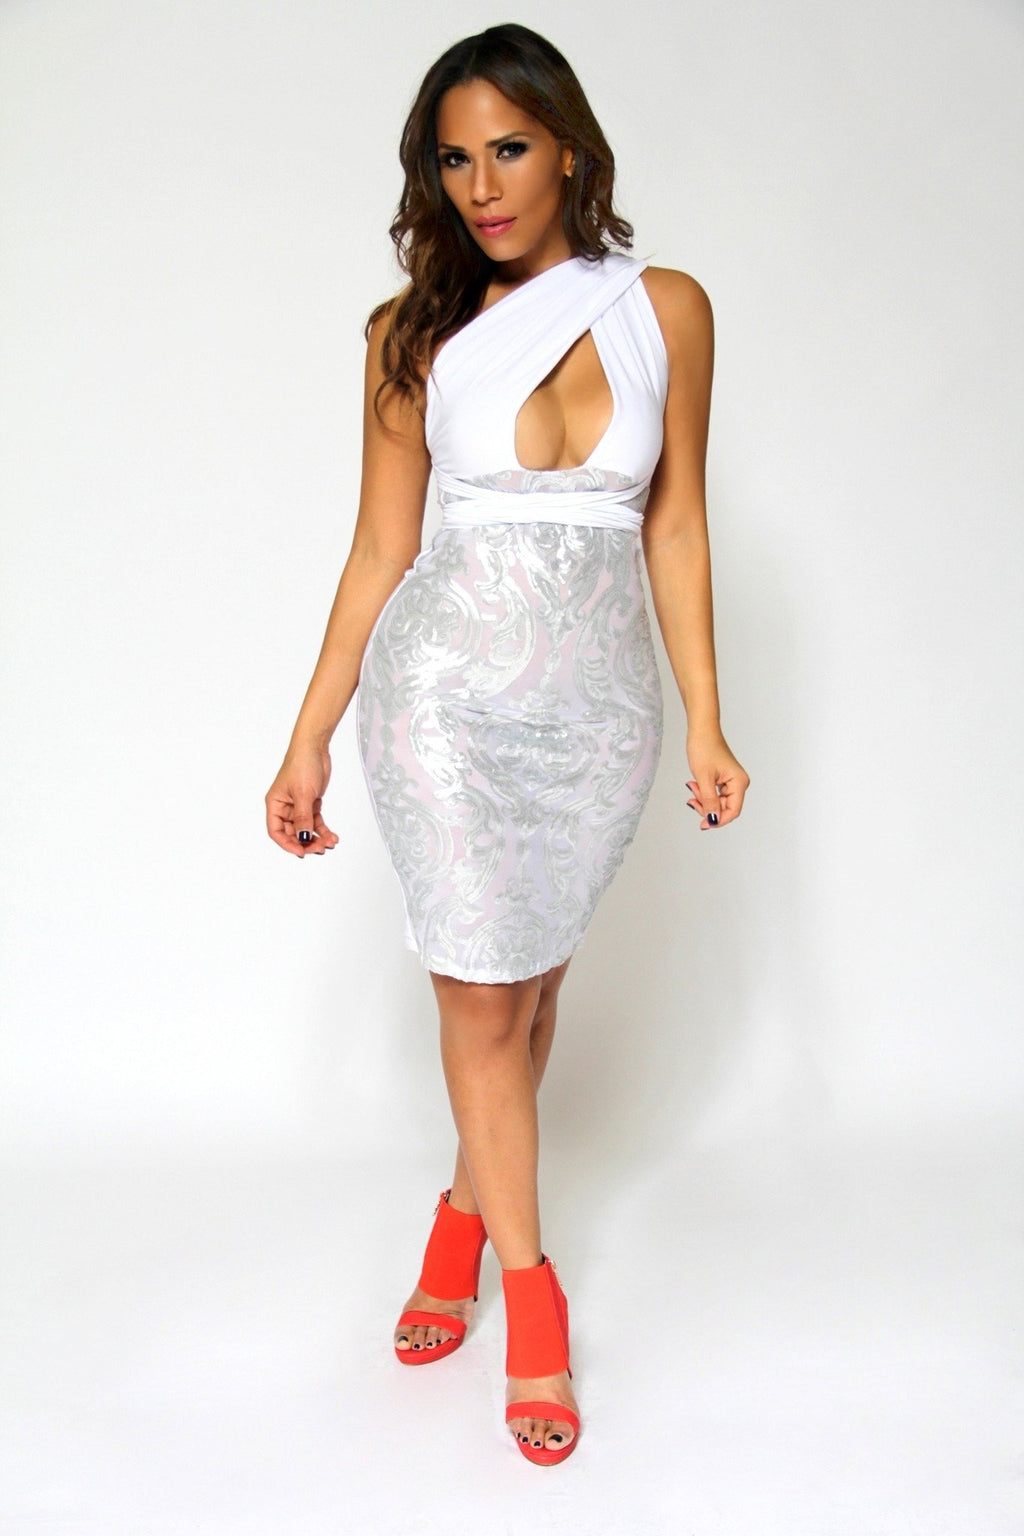 1d898036cc Sexy White Crossed Over Shoulder W  Sheer Metallic Lace Skirt Cocktail Dress.    24.99.   69.00. QUICK VIEW. Sale. Sophisticated High Low Textured  Strapless ...